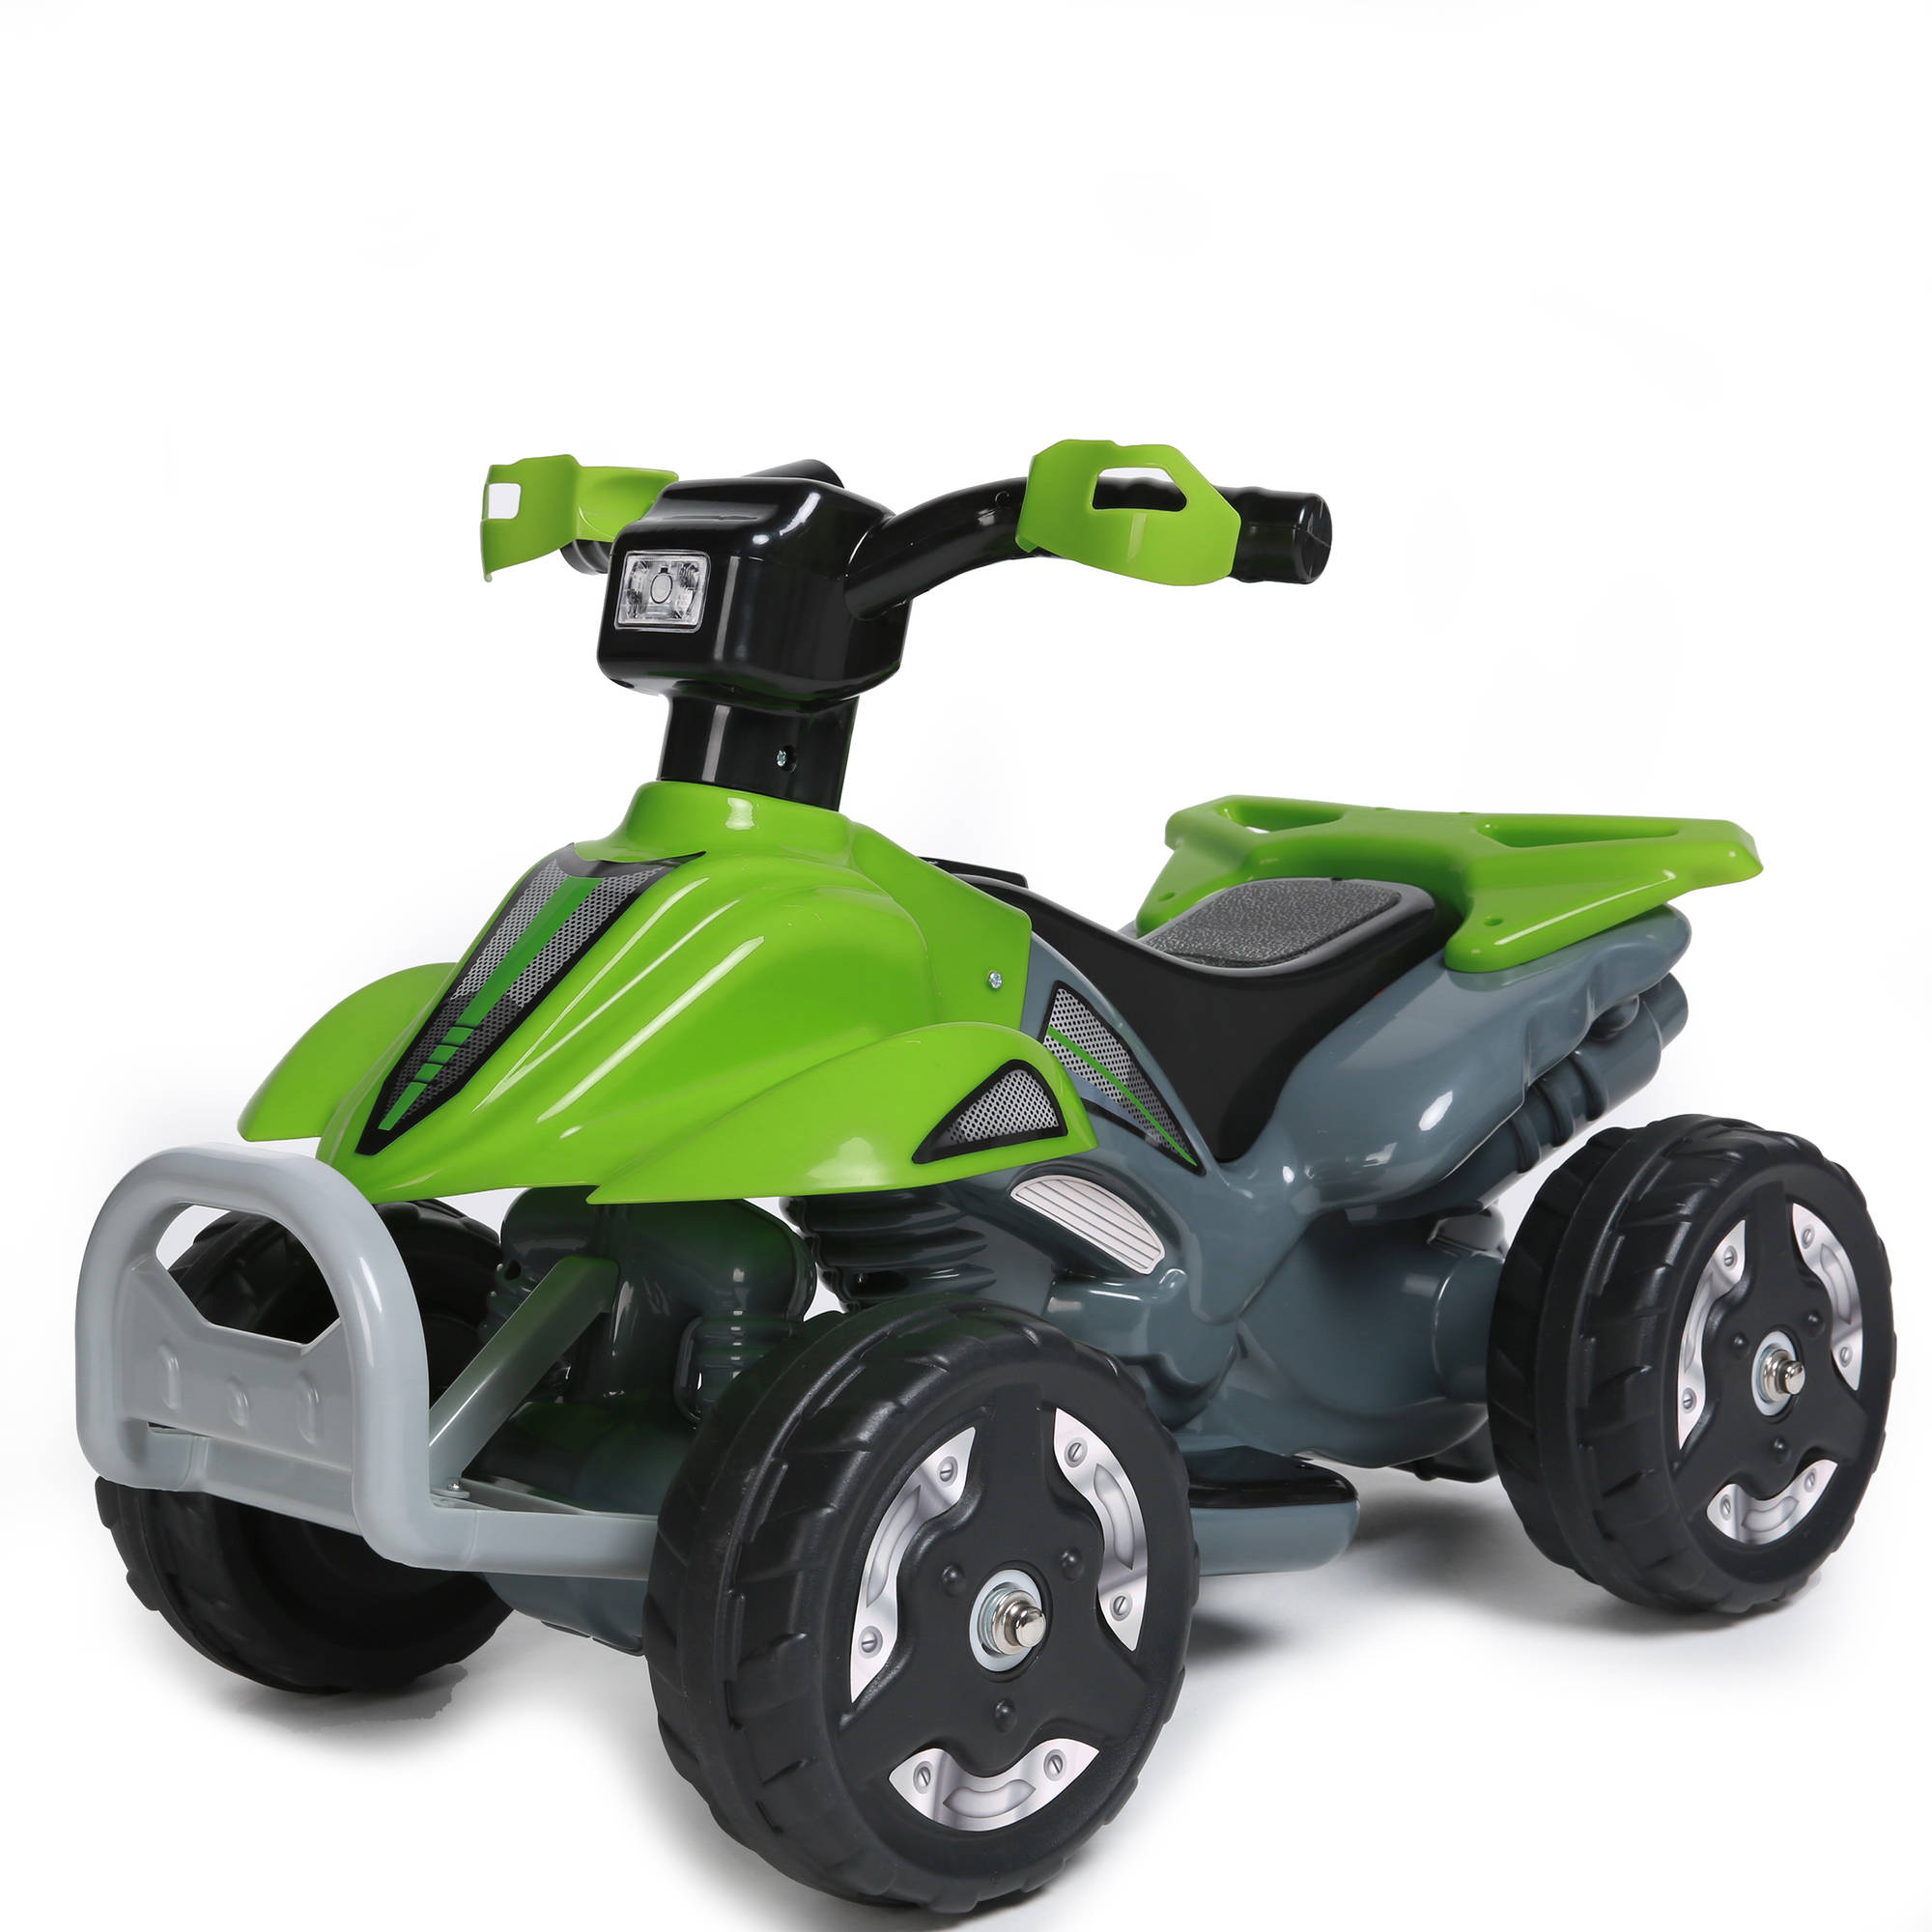 3 Wheel Chopper Trike Motorcycle For Kids Battery Powered Ride On Harley Engine Drawing Vquad And Method Toy By Lil Rider Toys Boys Girls Toddler Up Black